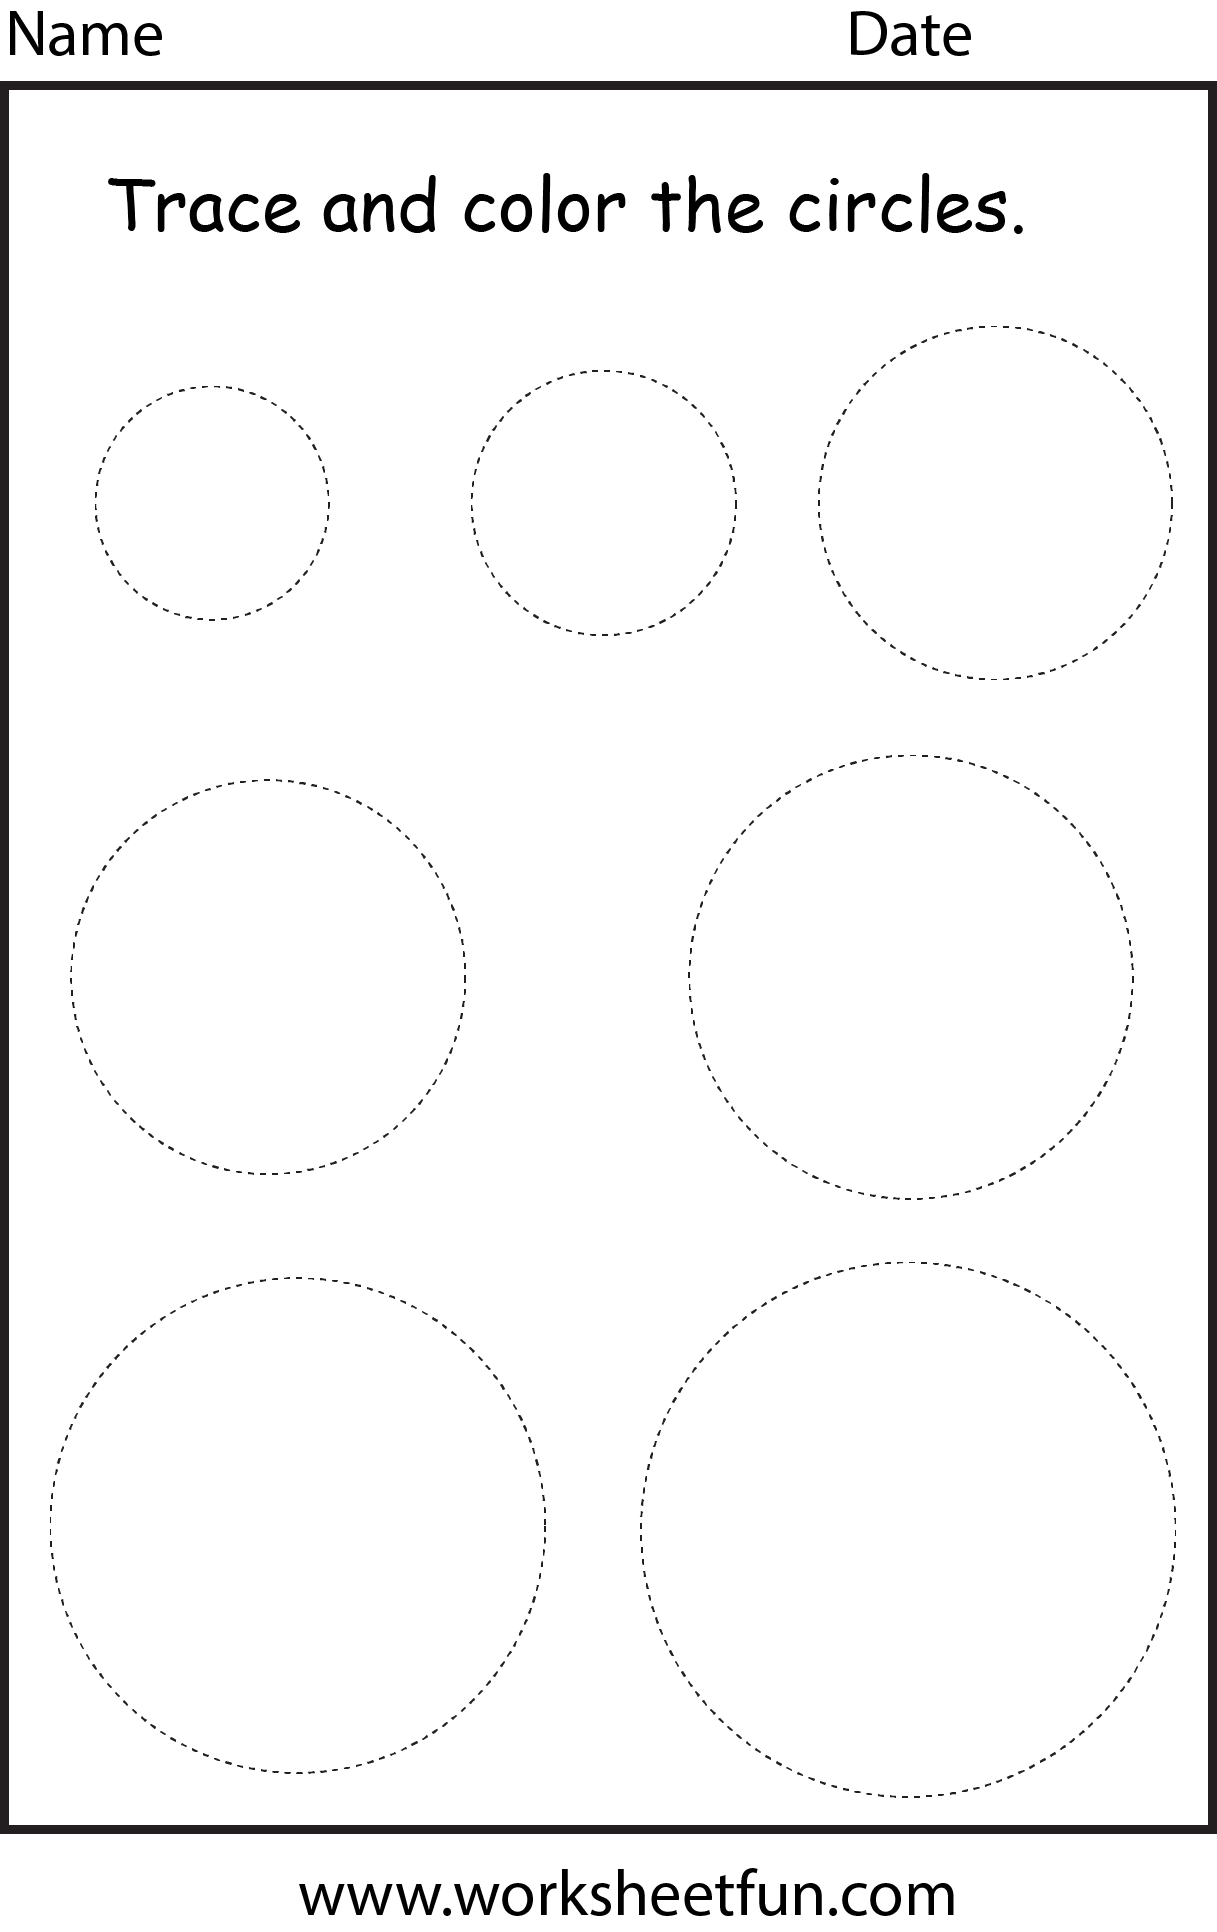 Shape Circle 1 Worksheet Free Printable Worksheets